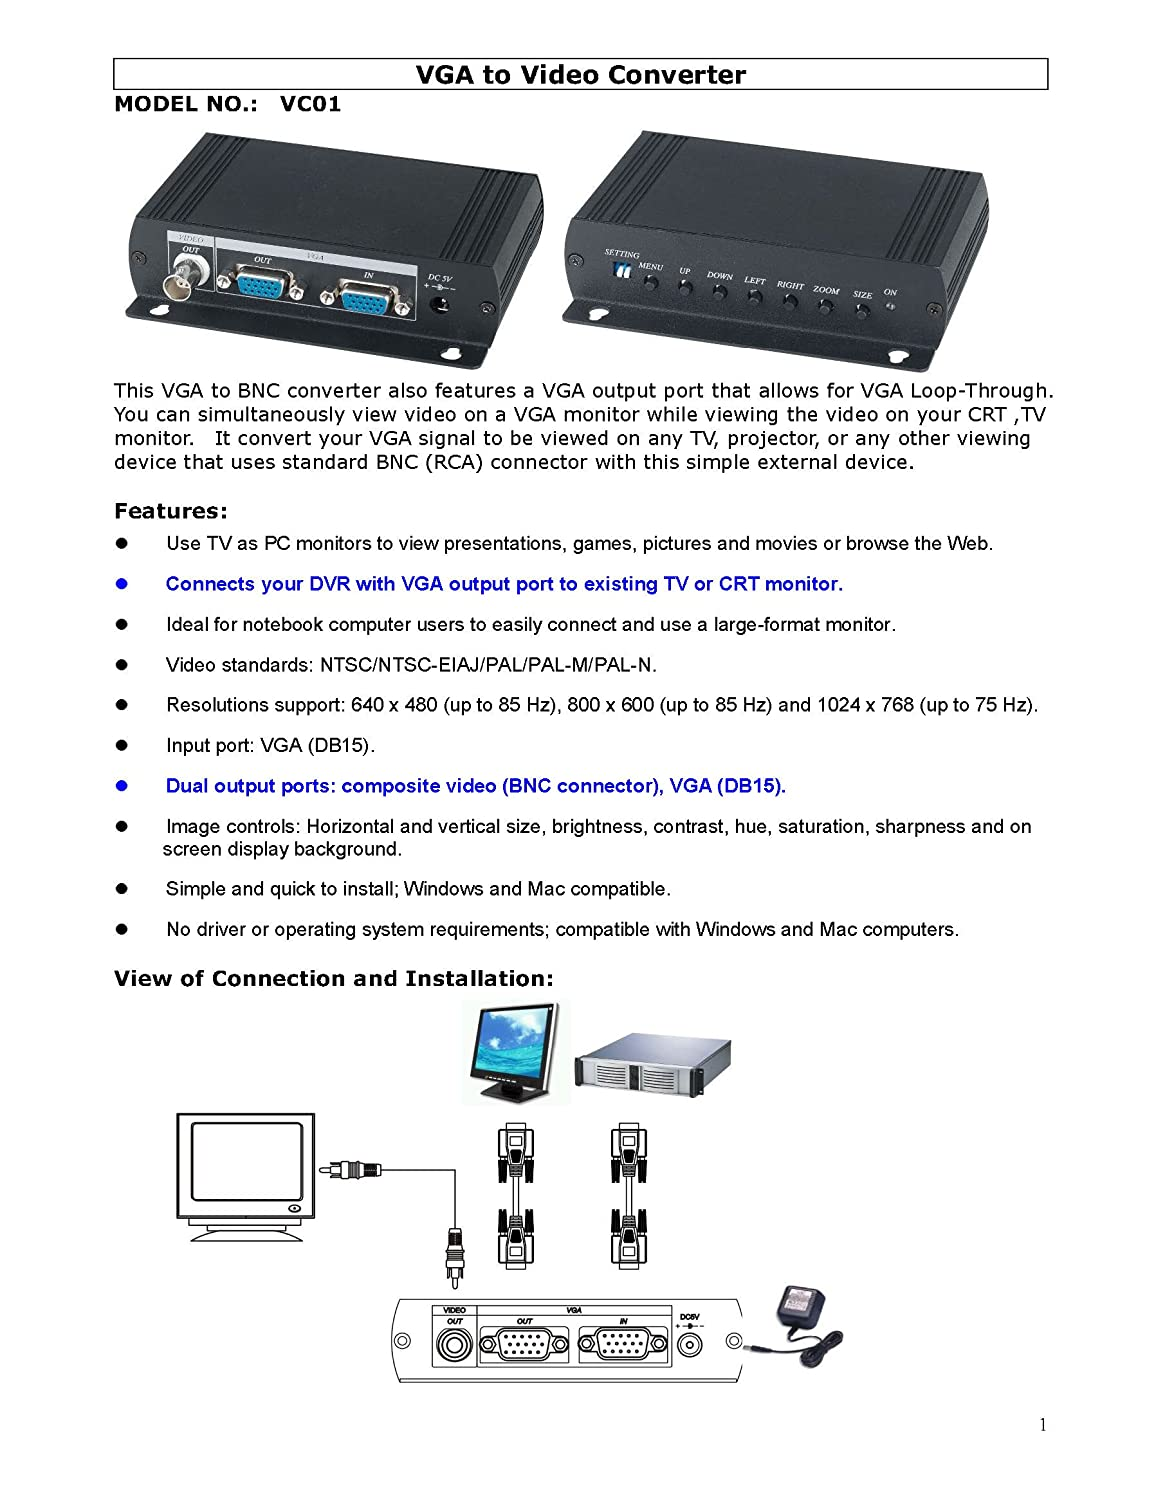 Surprising Amazon Com Vga To Composite Video Bnc Converter Dual Output To Wiring Digital Resources Indicompassionincorg